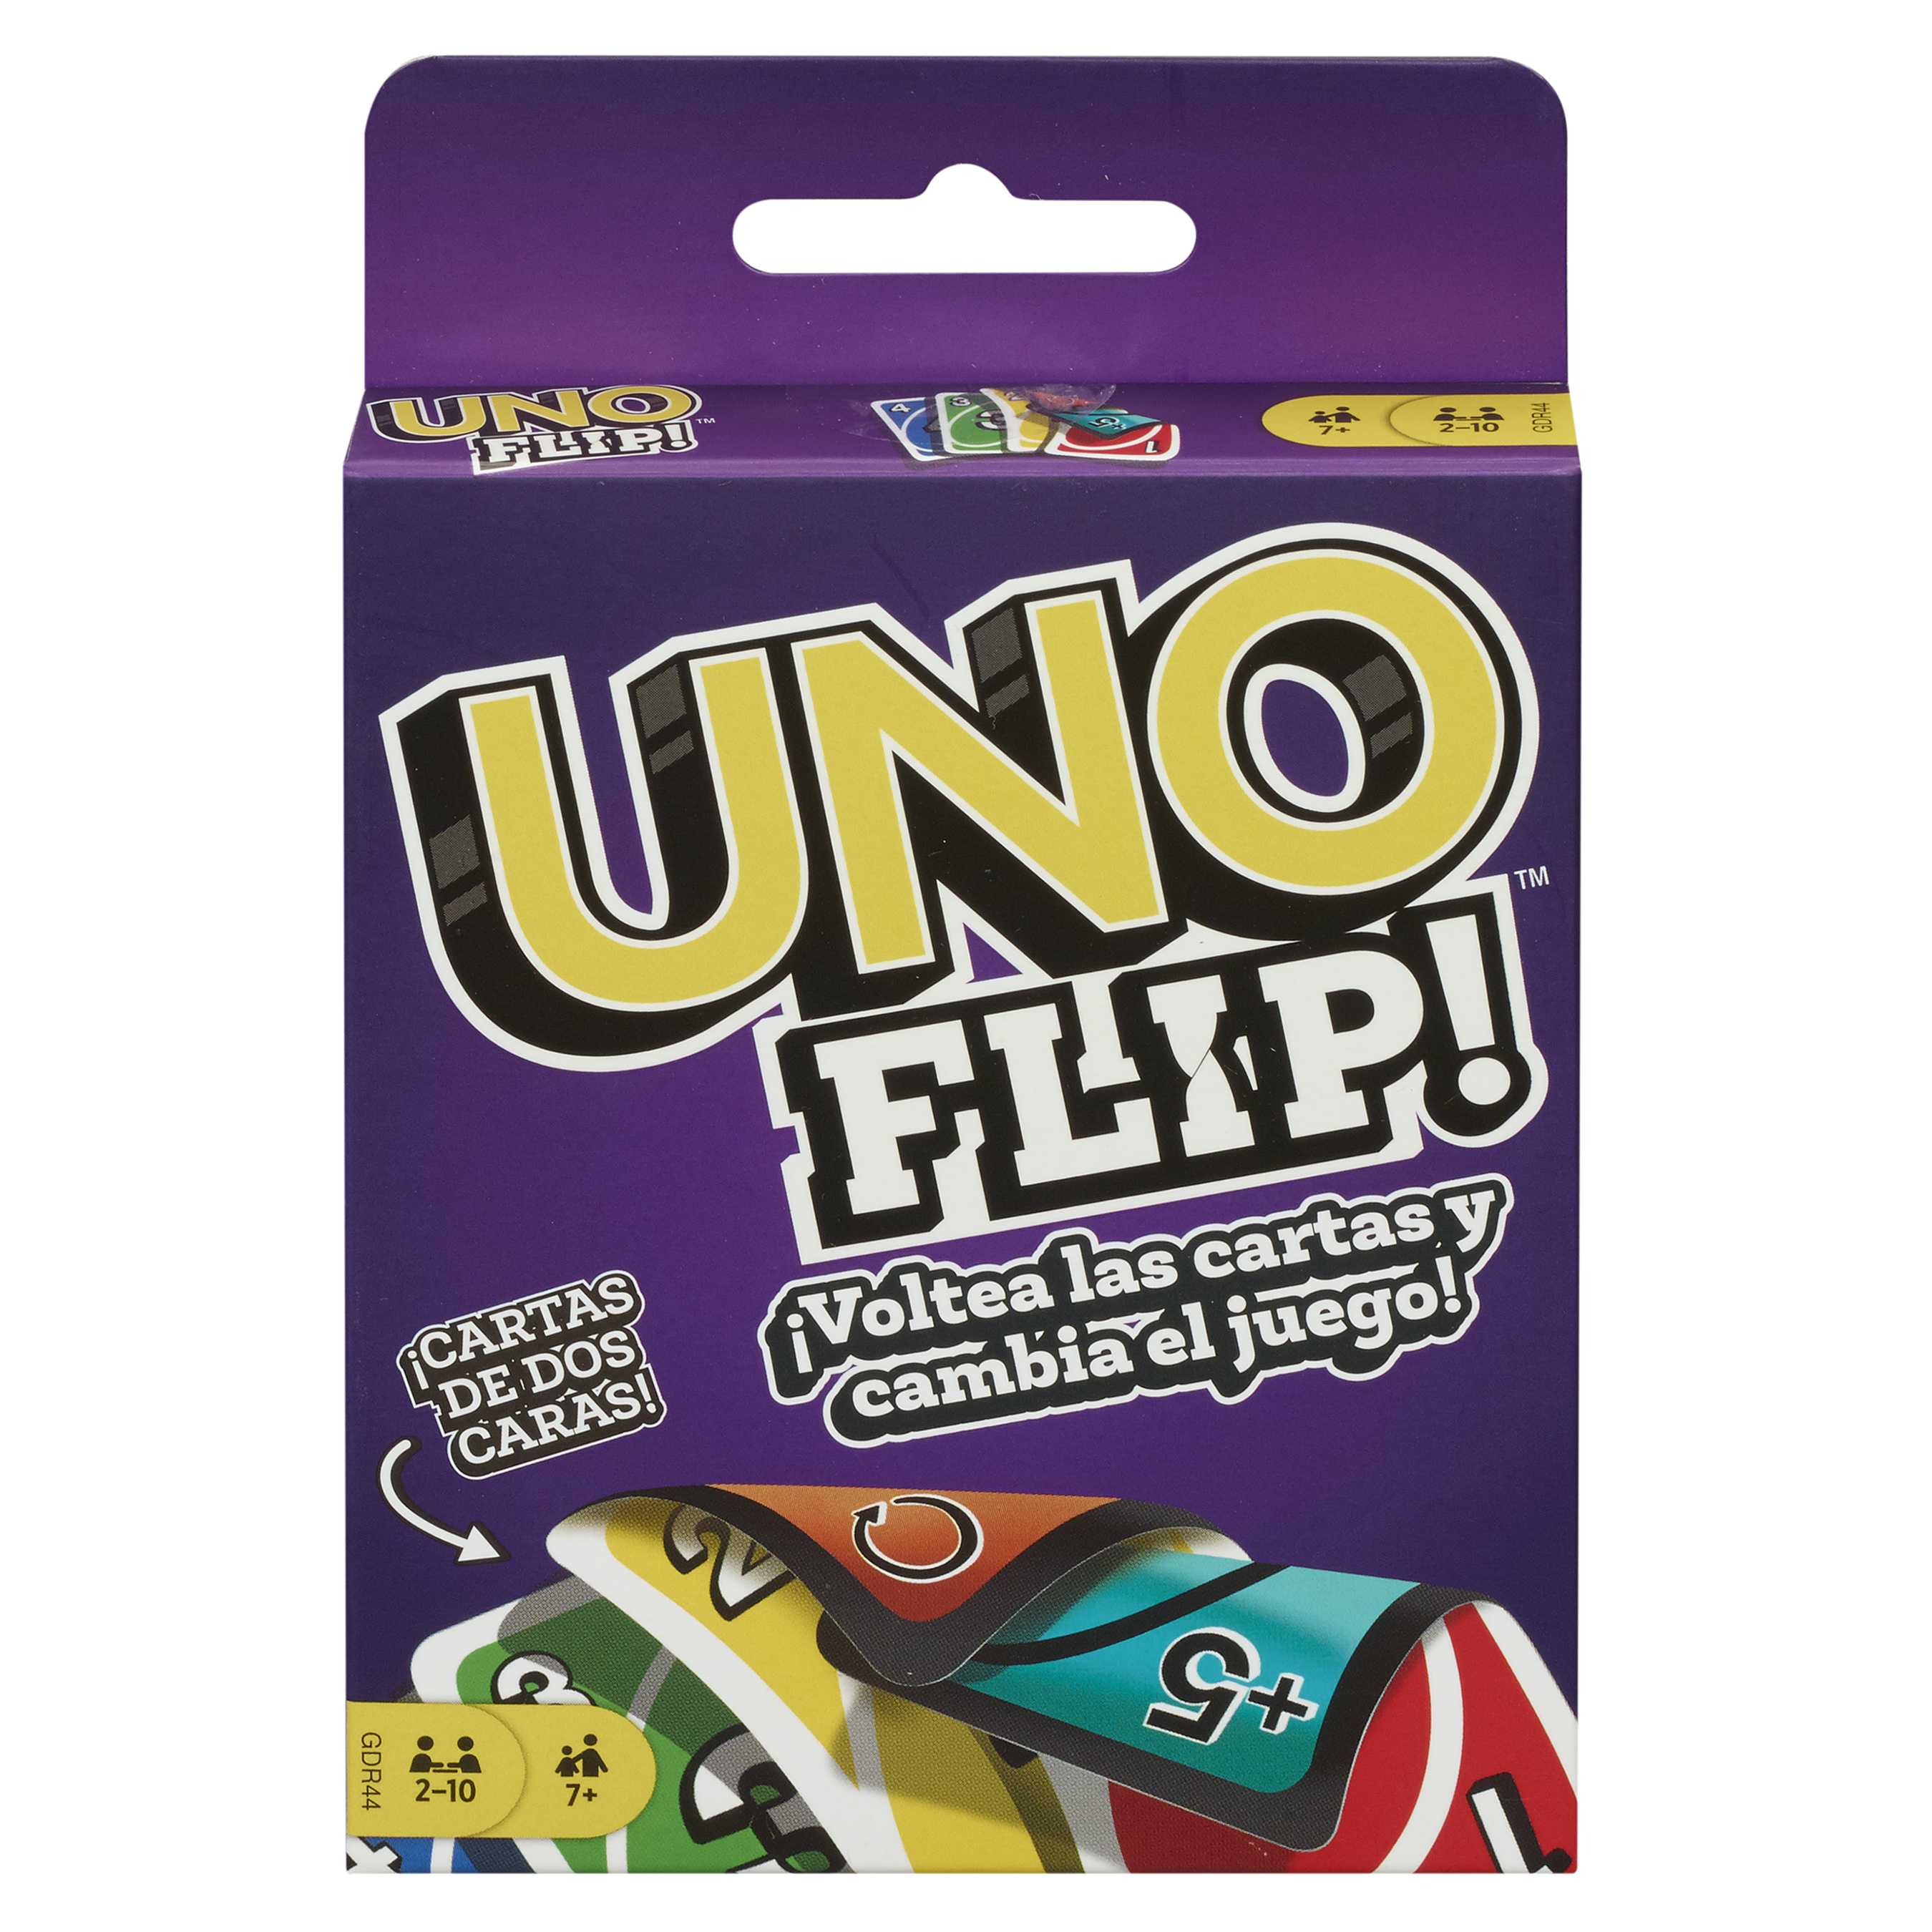 The World's #1 Card Game* UNO® Flips the Deck with New UNO